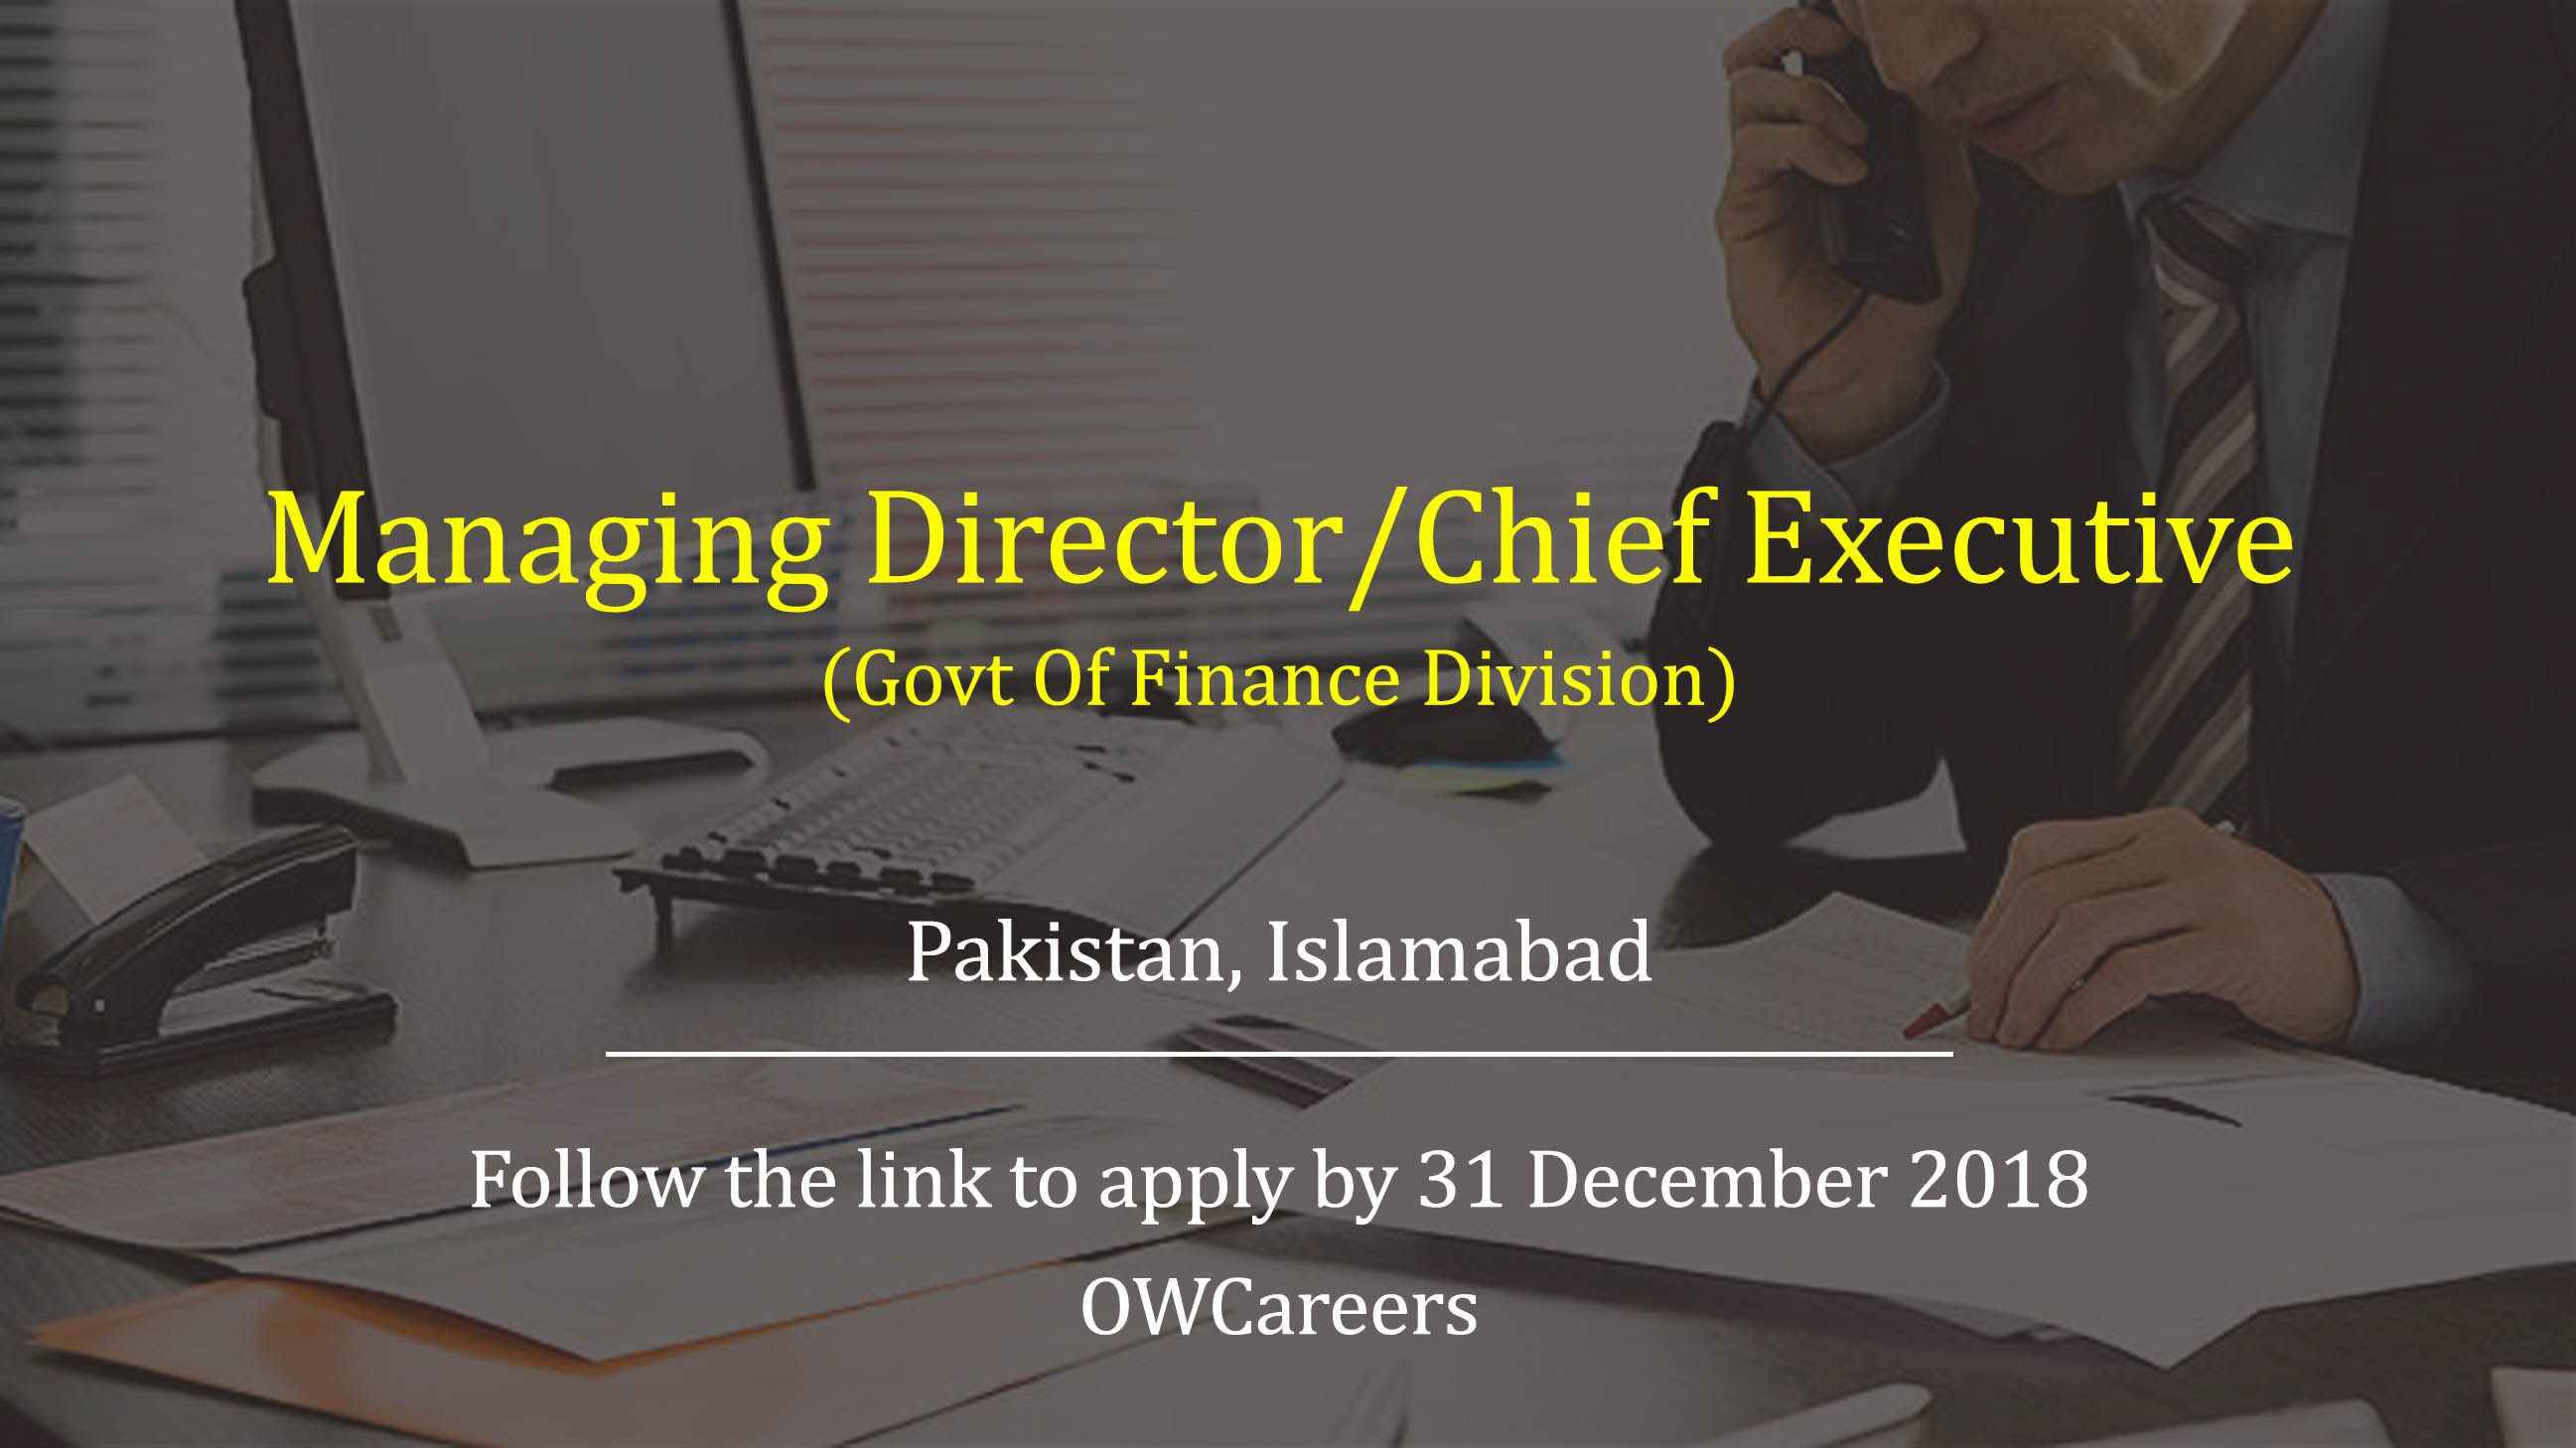 Managing Director/Chief Executive Job is available with